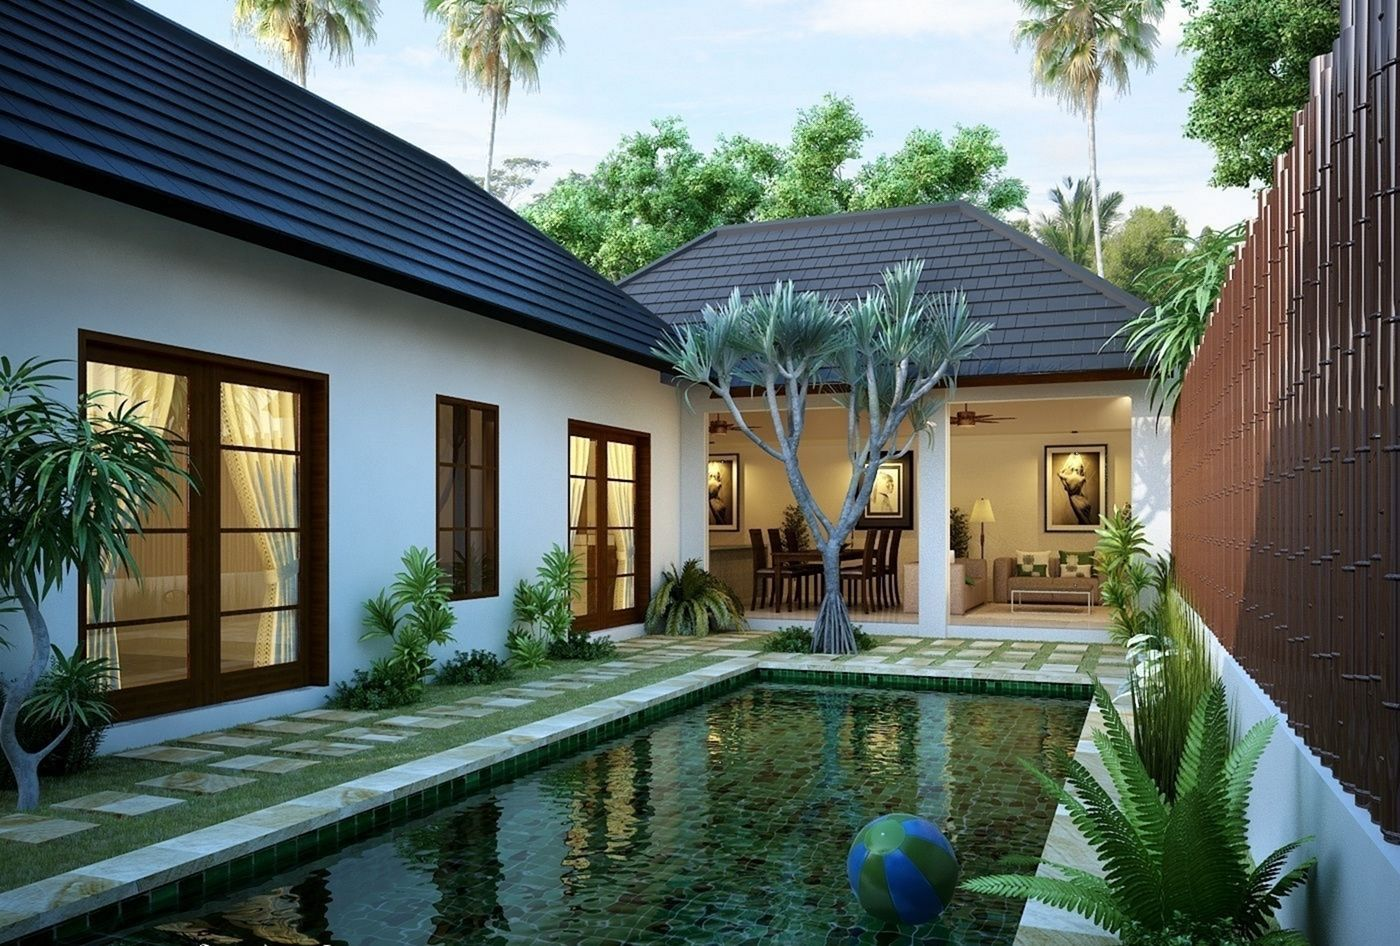 25 Stunning Modern Tropical Houses Design And Decorating Ideas Modern Tropical House Tropical House Design Tropical Houses